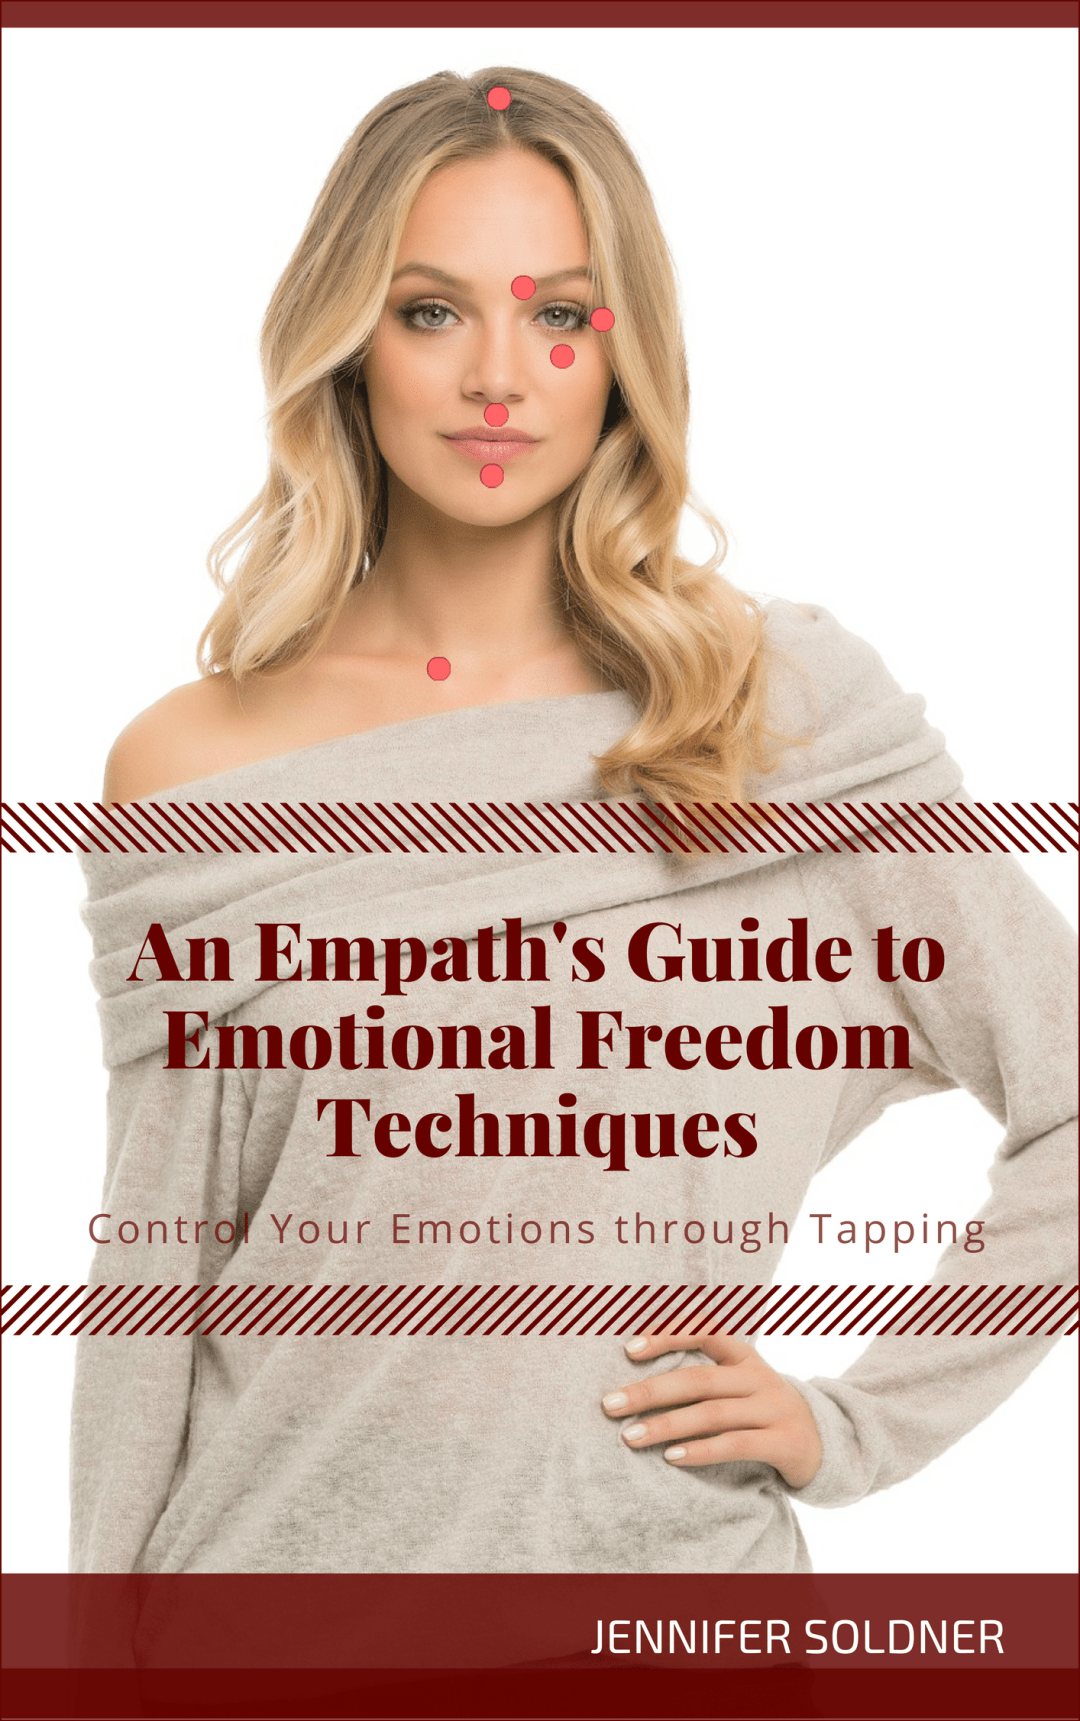 An Empath's Guide to Emotional Freedom Techniques